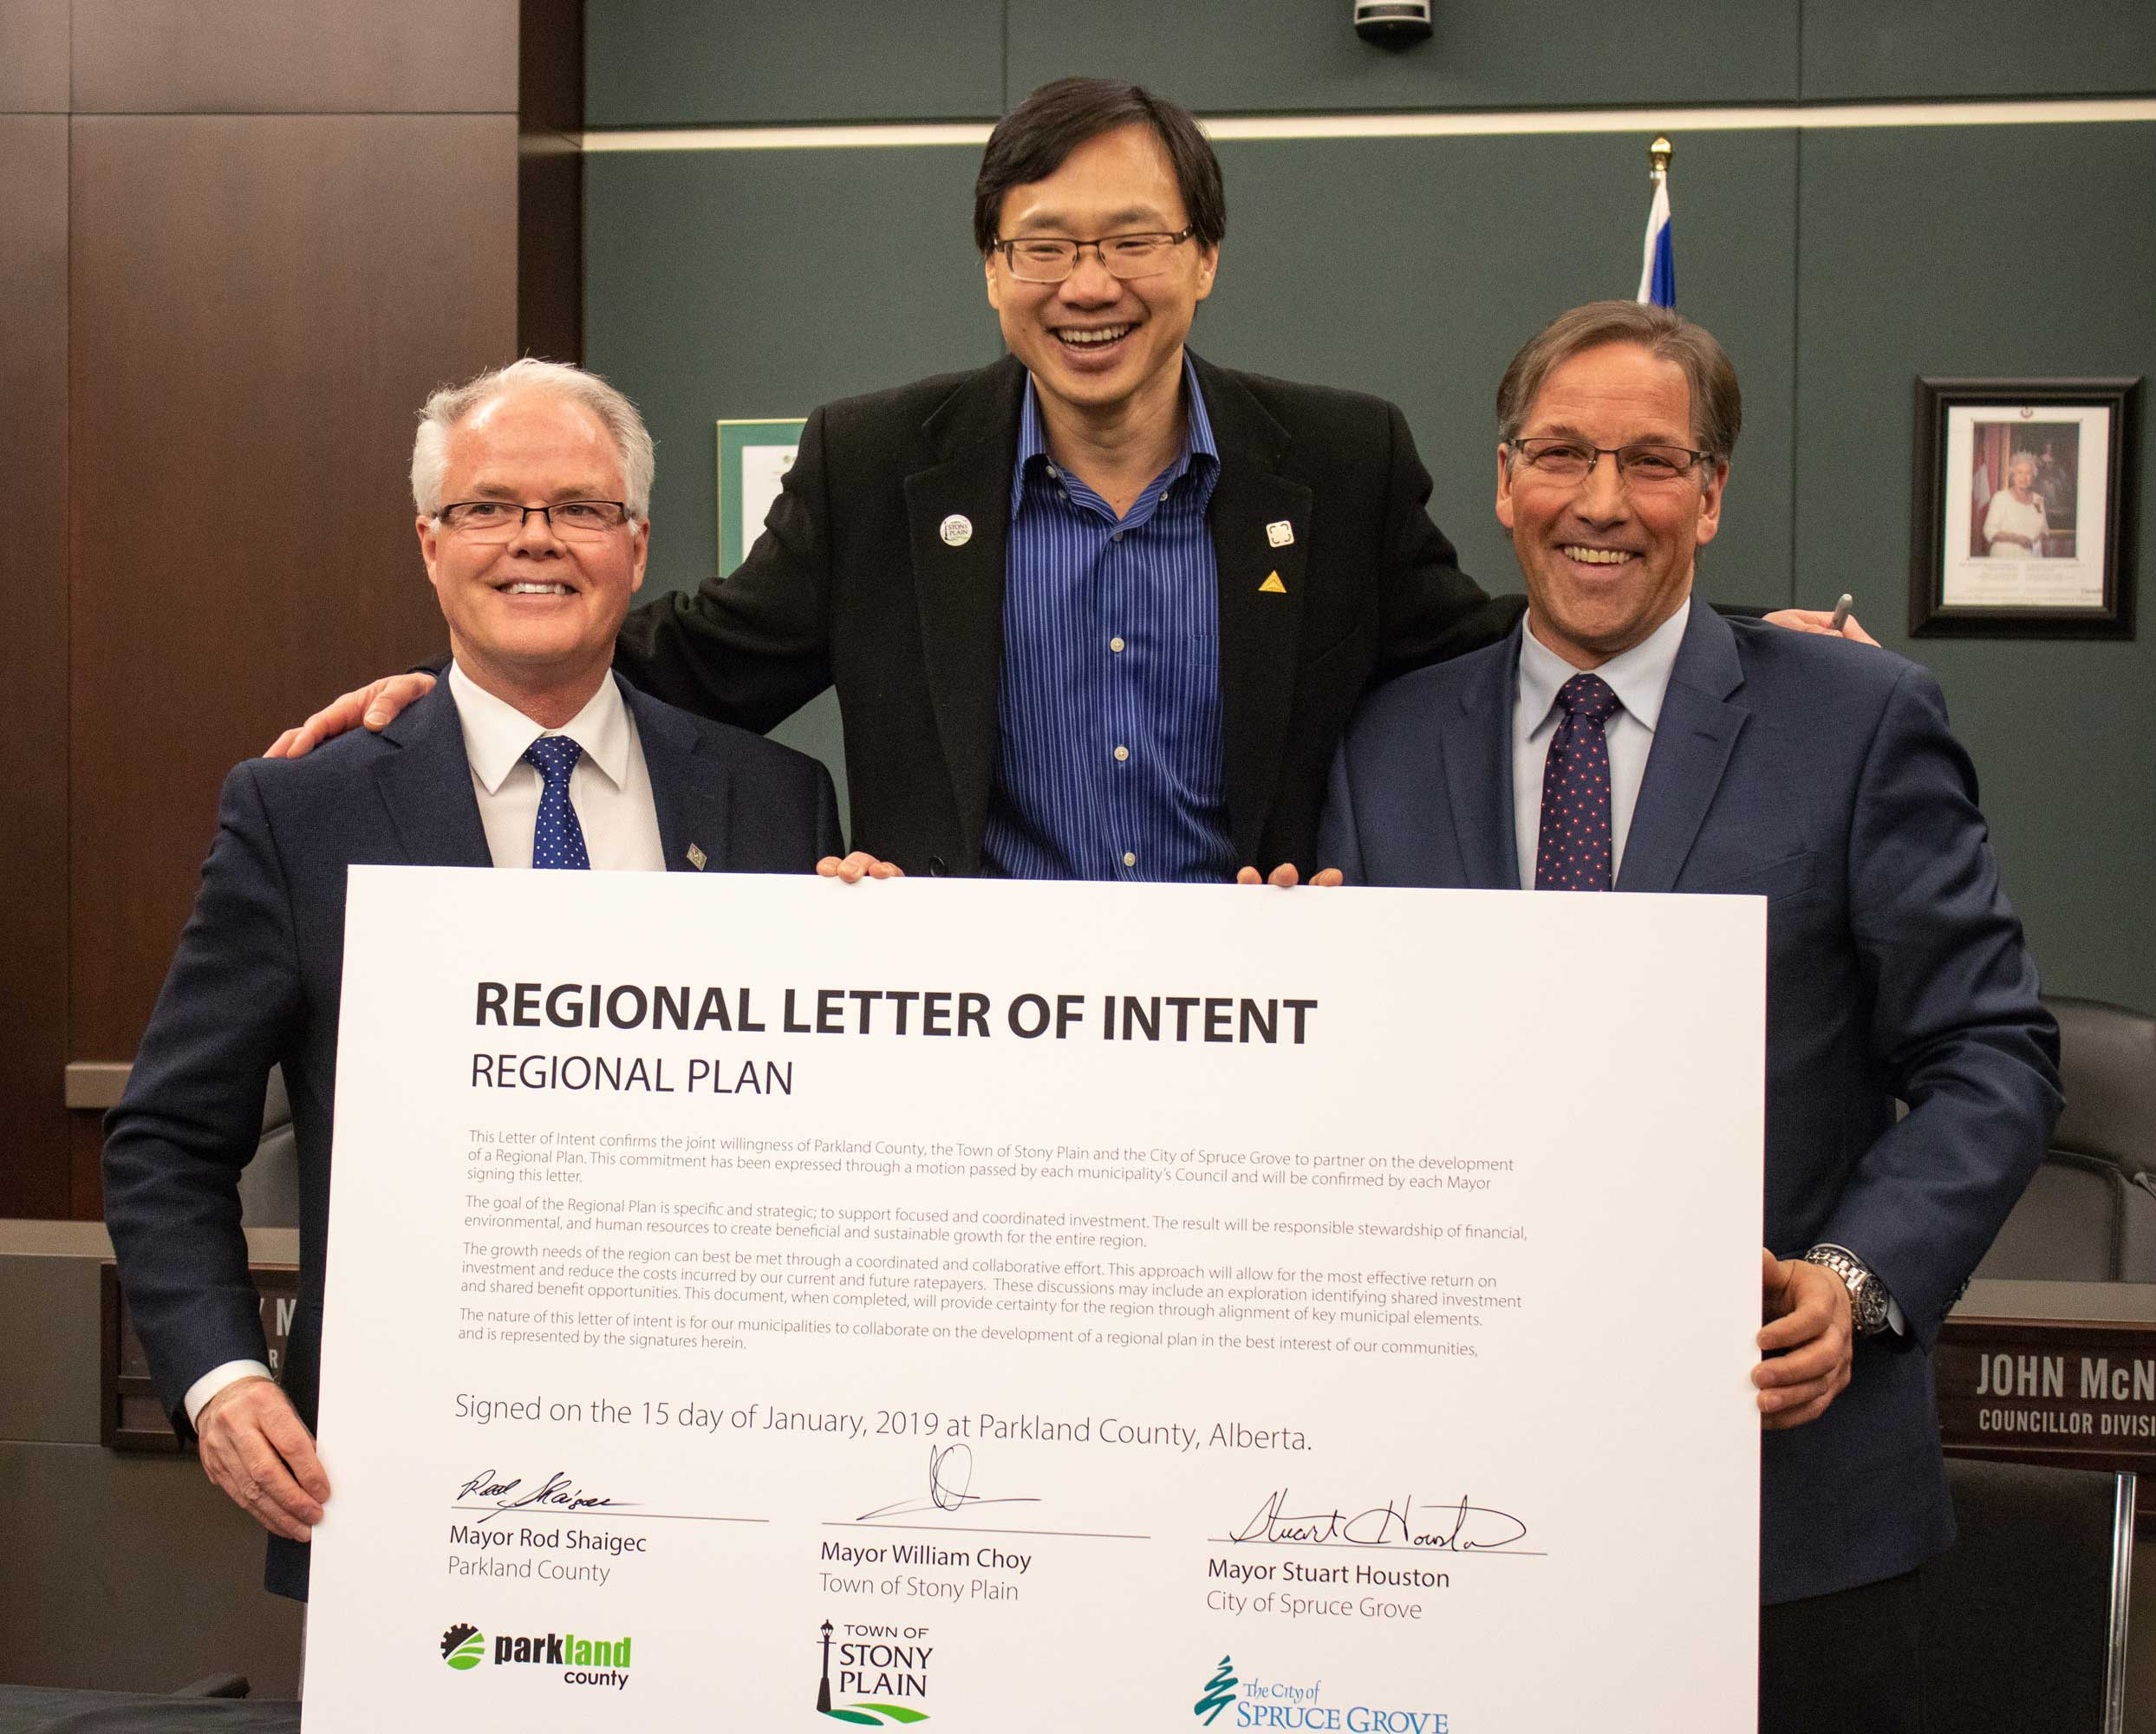 Mayors-and-Signed-Letter-of-Intent